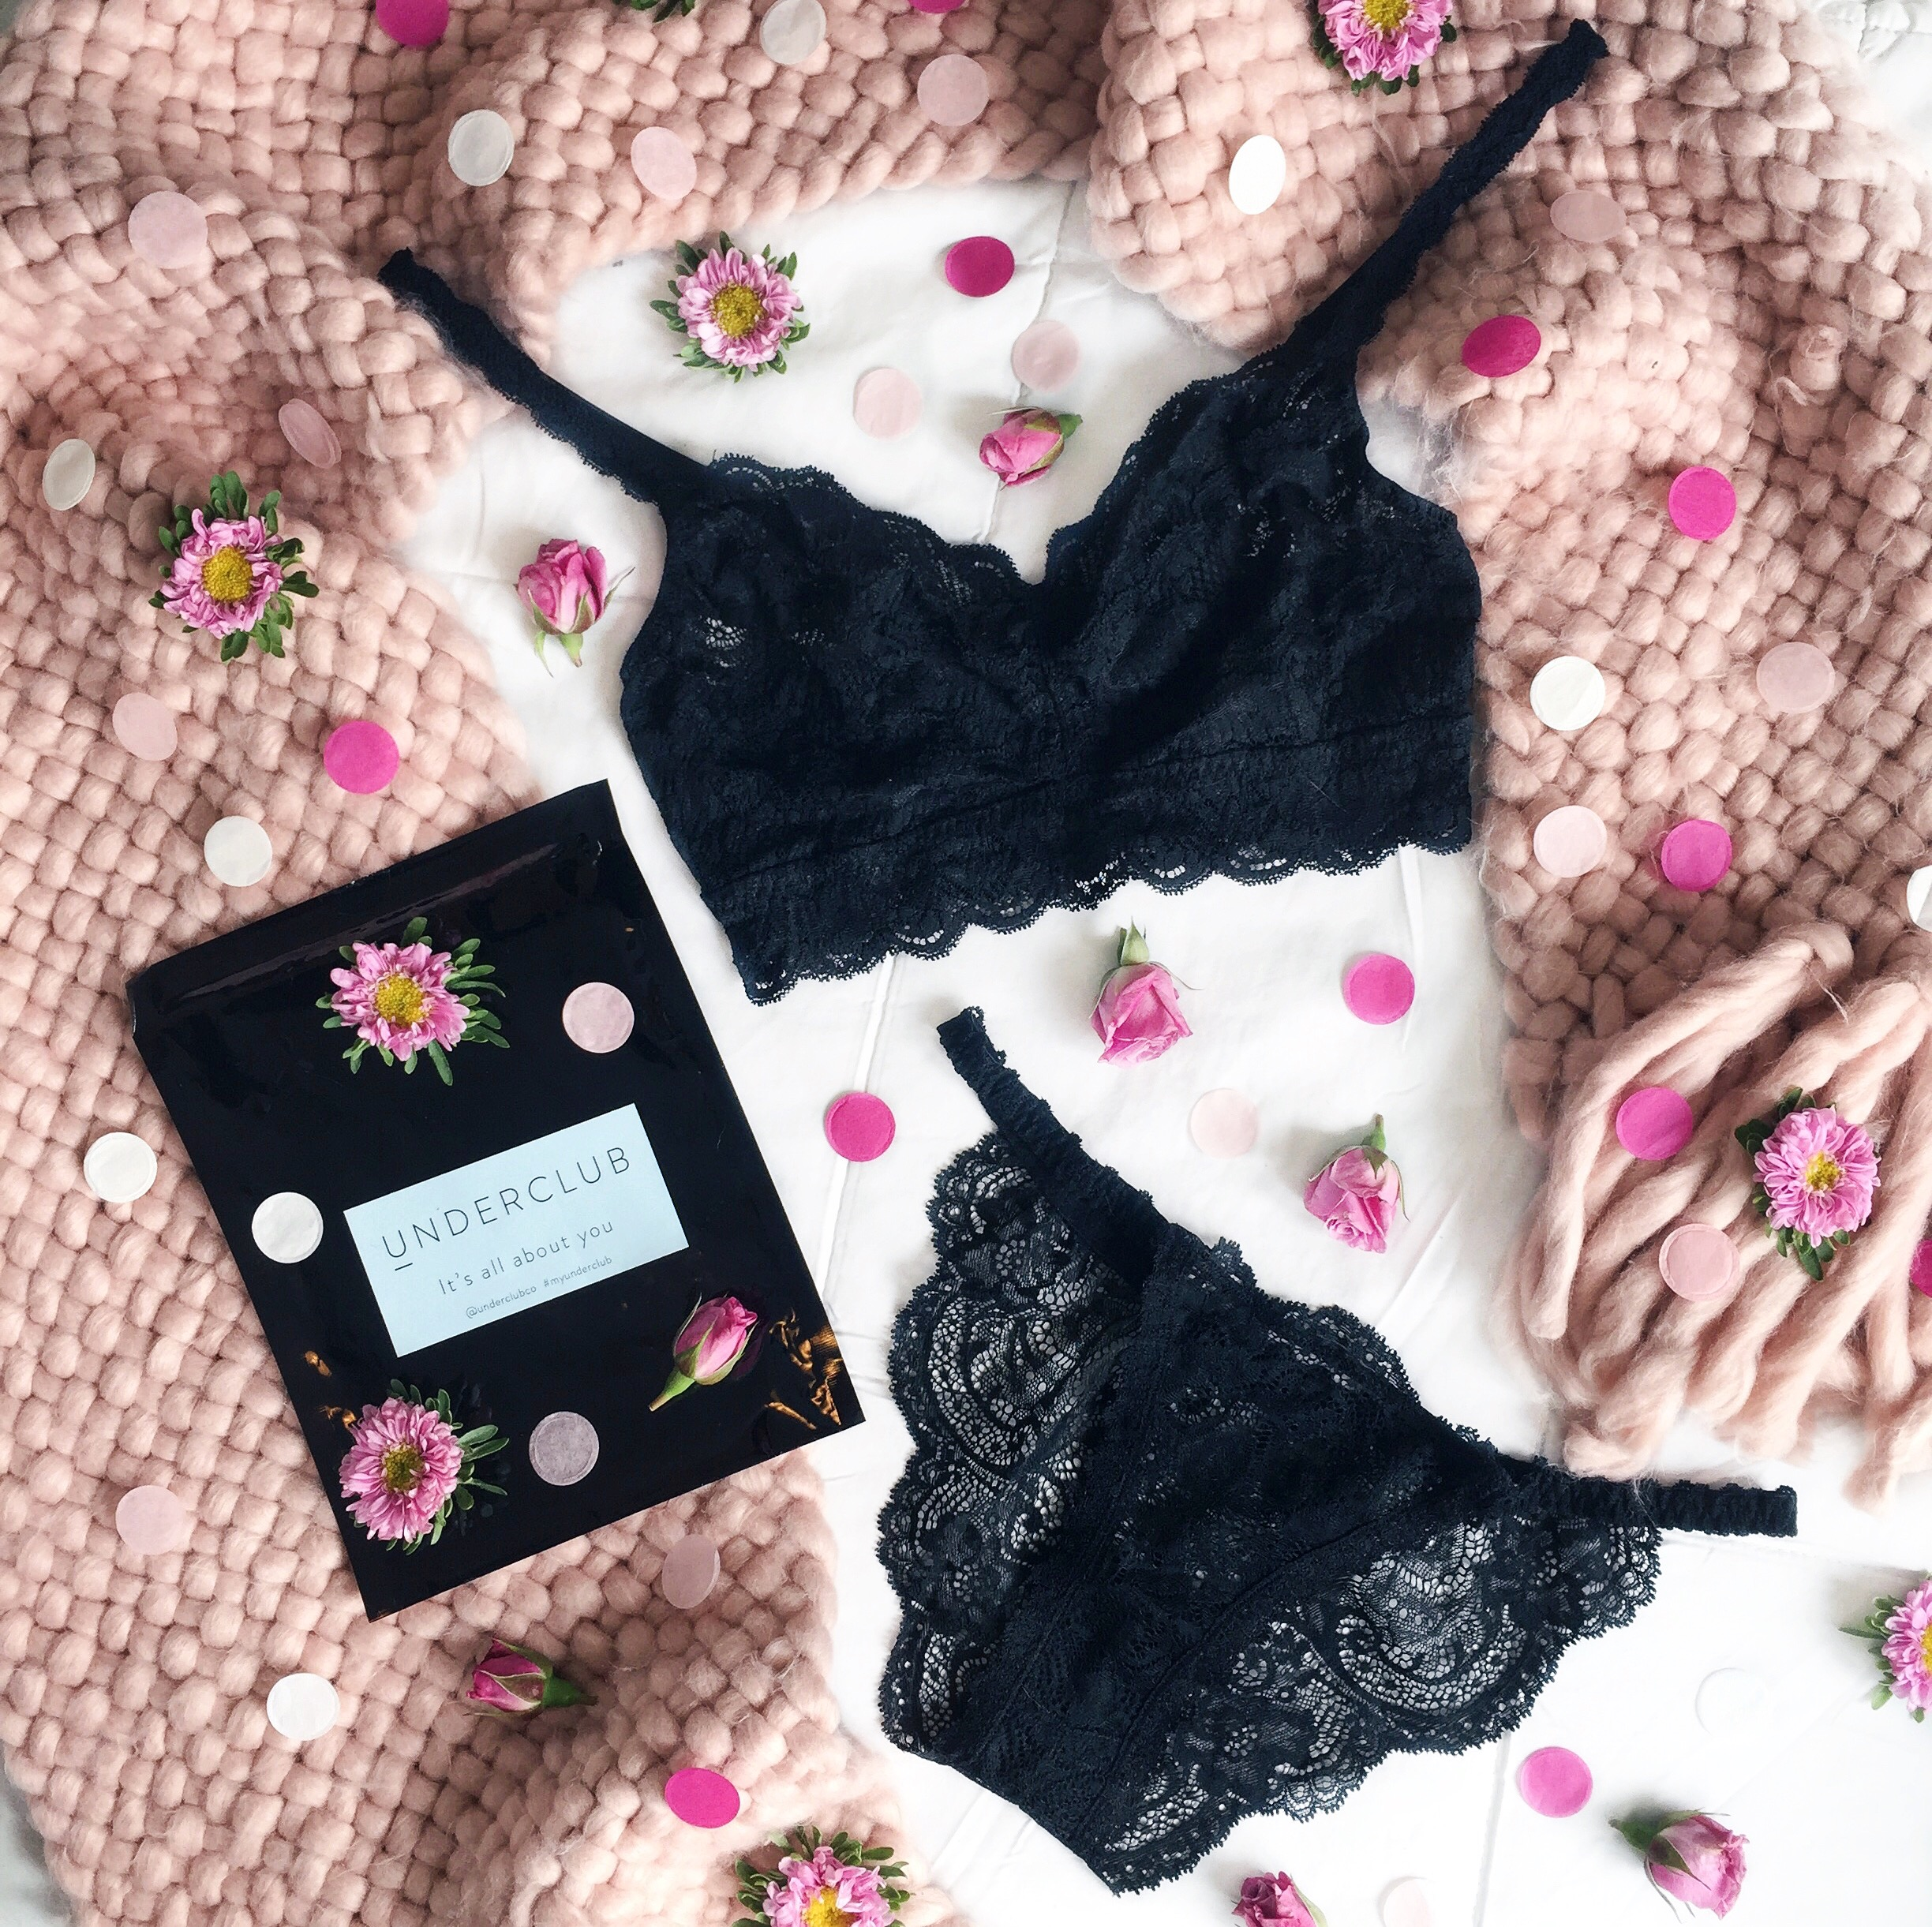 The Perfect Valentine's Gifts For Her - Underclub Subscription